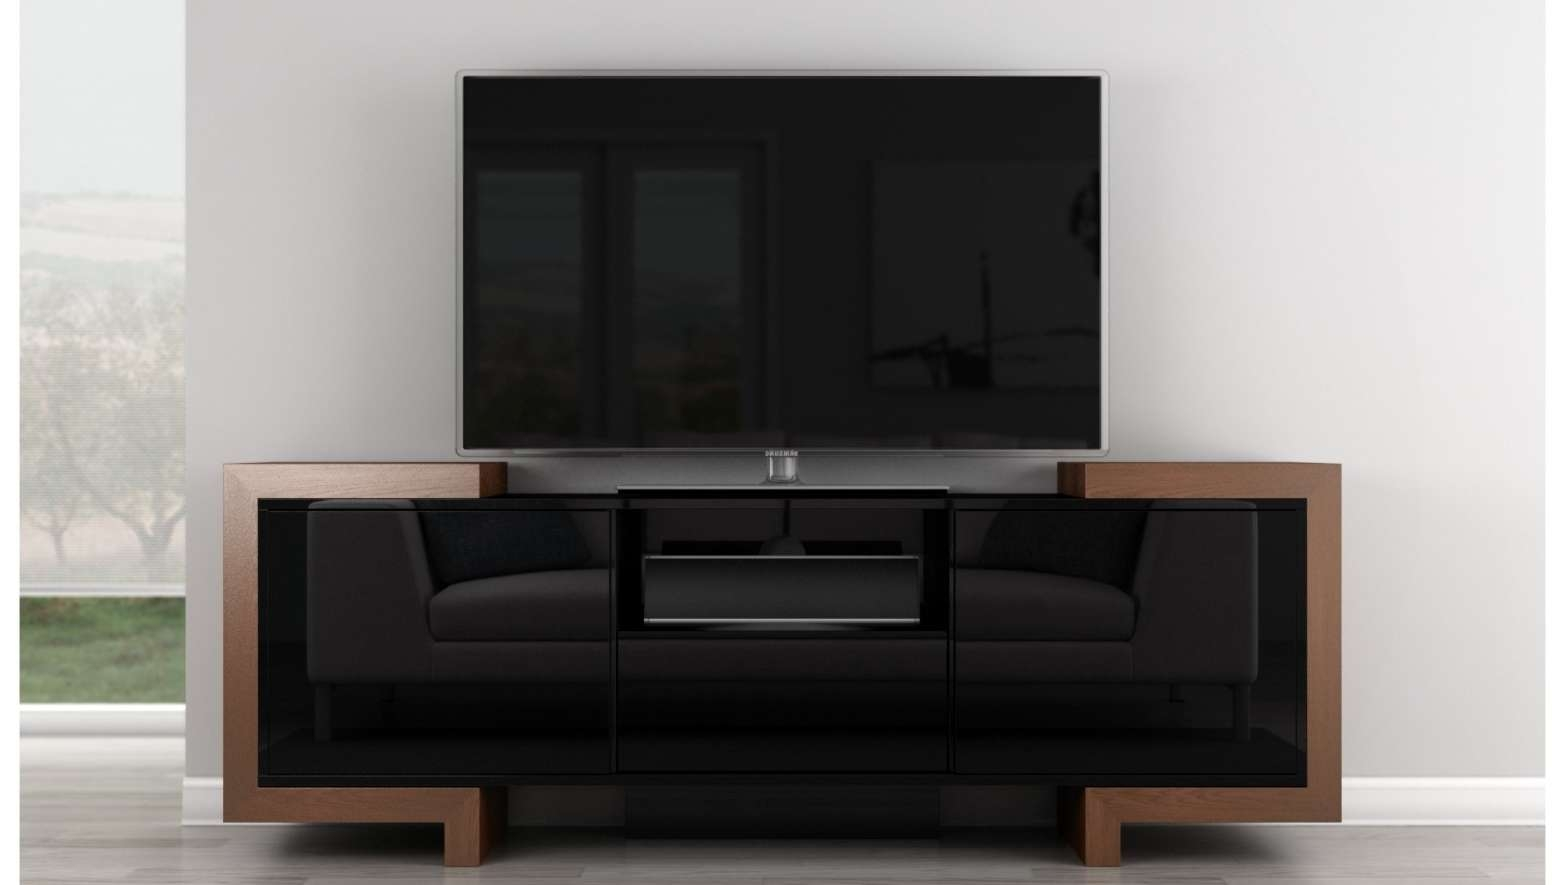 Engaging 65 Inch Tv Stands With Integrated Mount Tags : 65 Inch Tv Within 65 Inch Tv Stands With Integrated Mount (View 7 of 15)